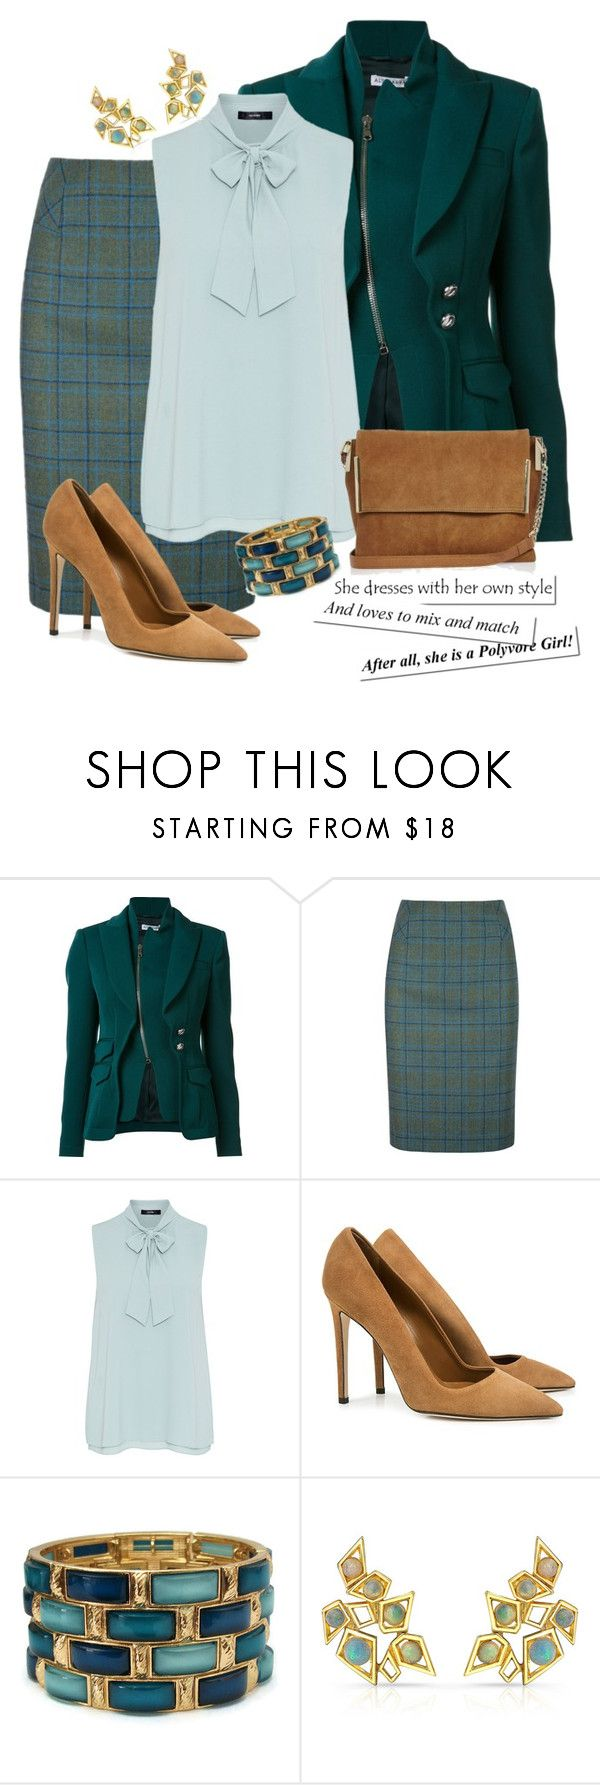 """""""...a Polyvore Girl ❤️"""" by curvygirlamy ❤ liked on Polyvore featuring Altuzarra, DUBARRY, Hallhuber, Dee Keller, Ron Hami and River Island"""